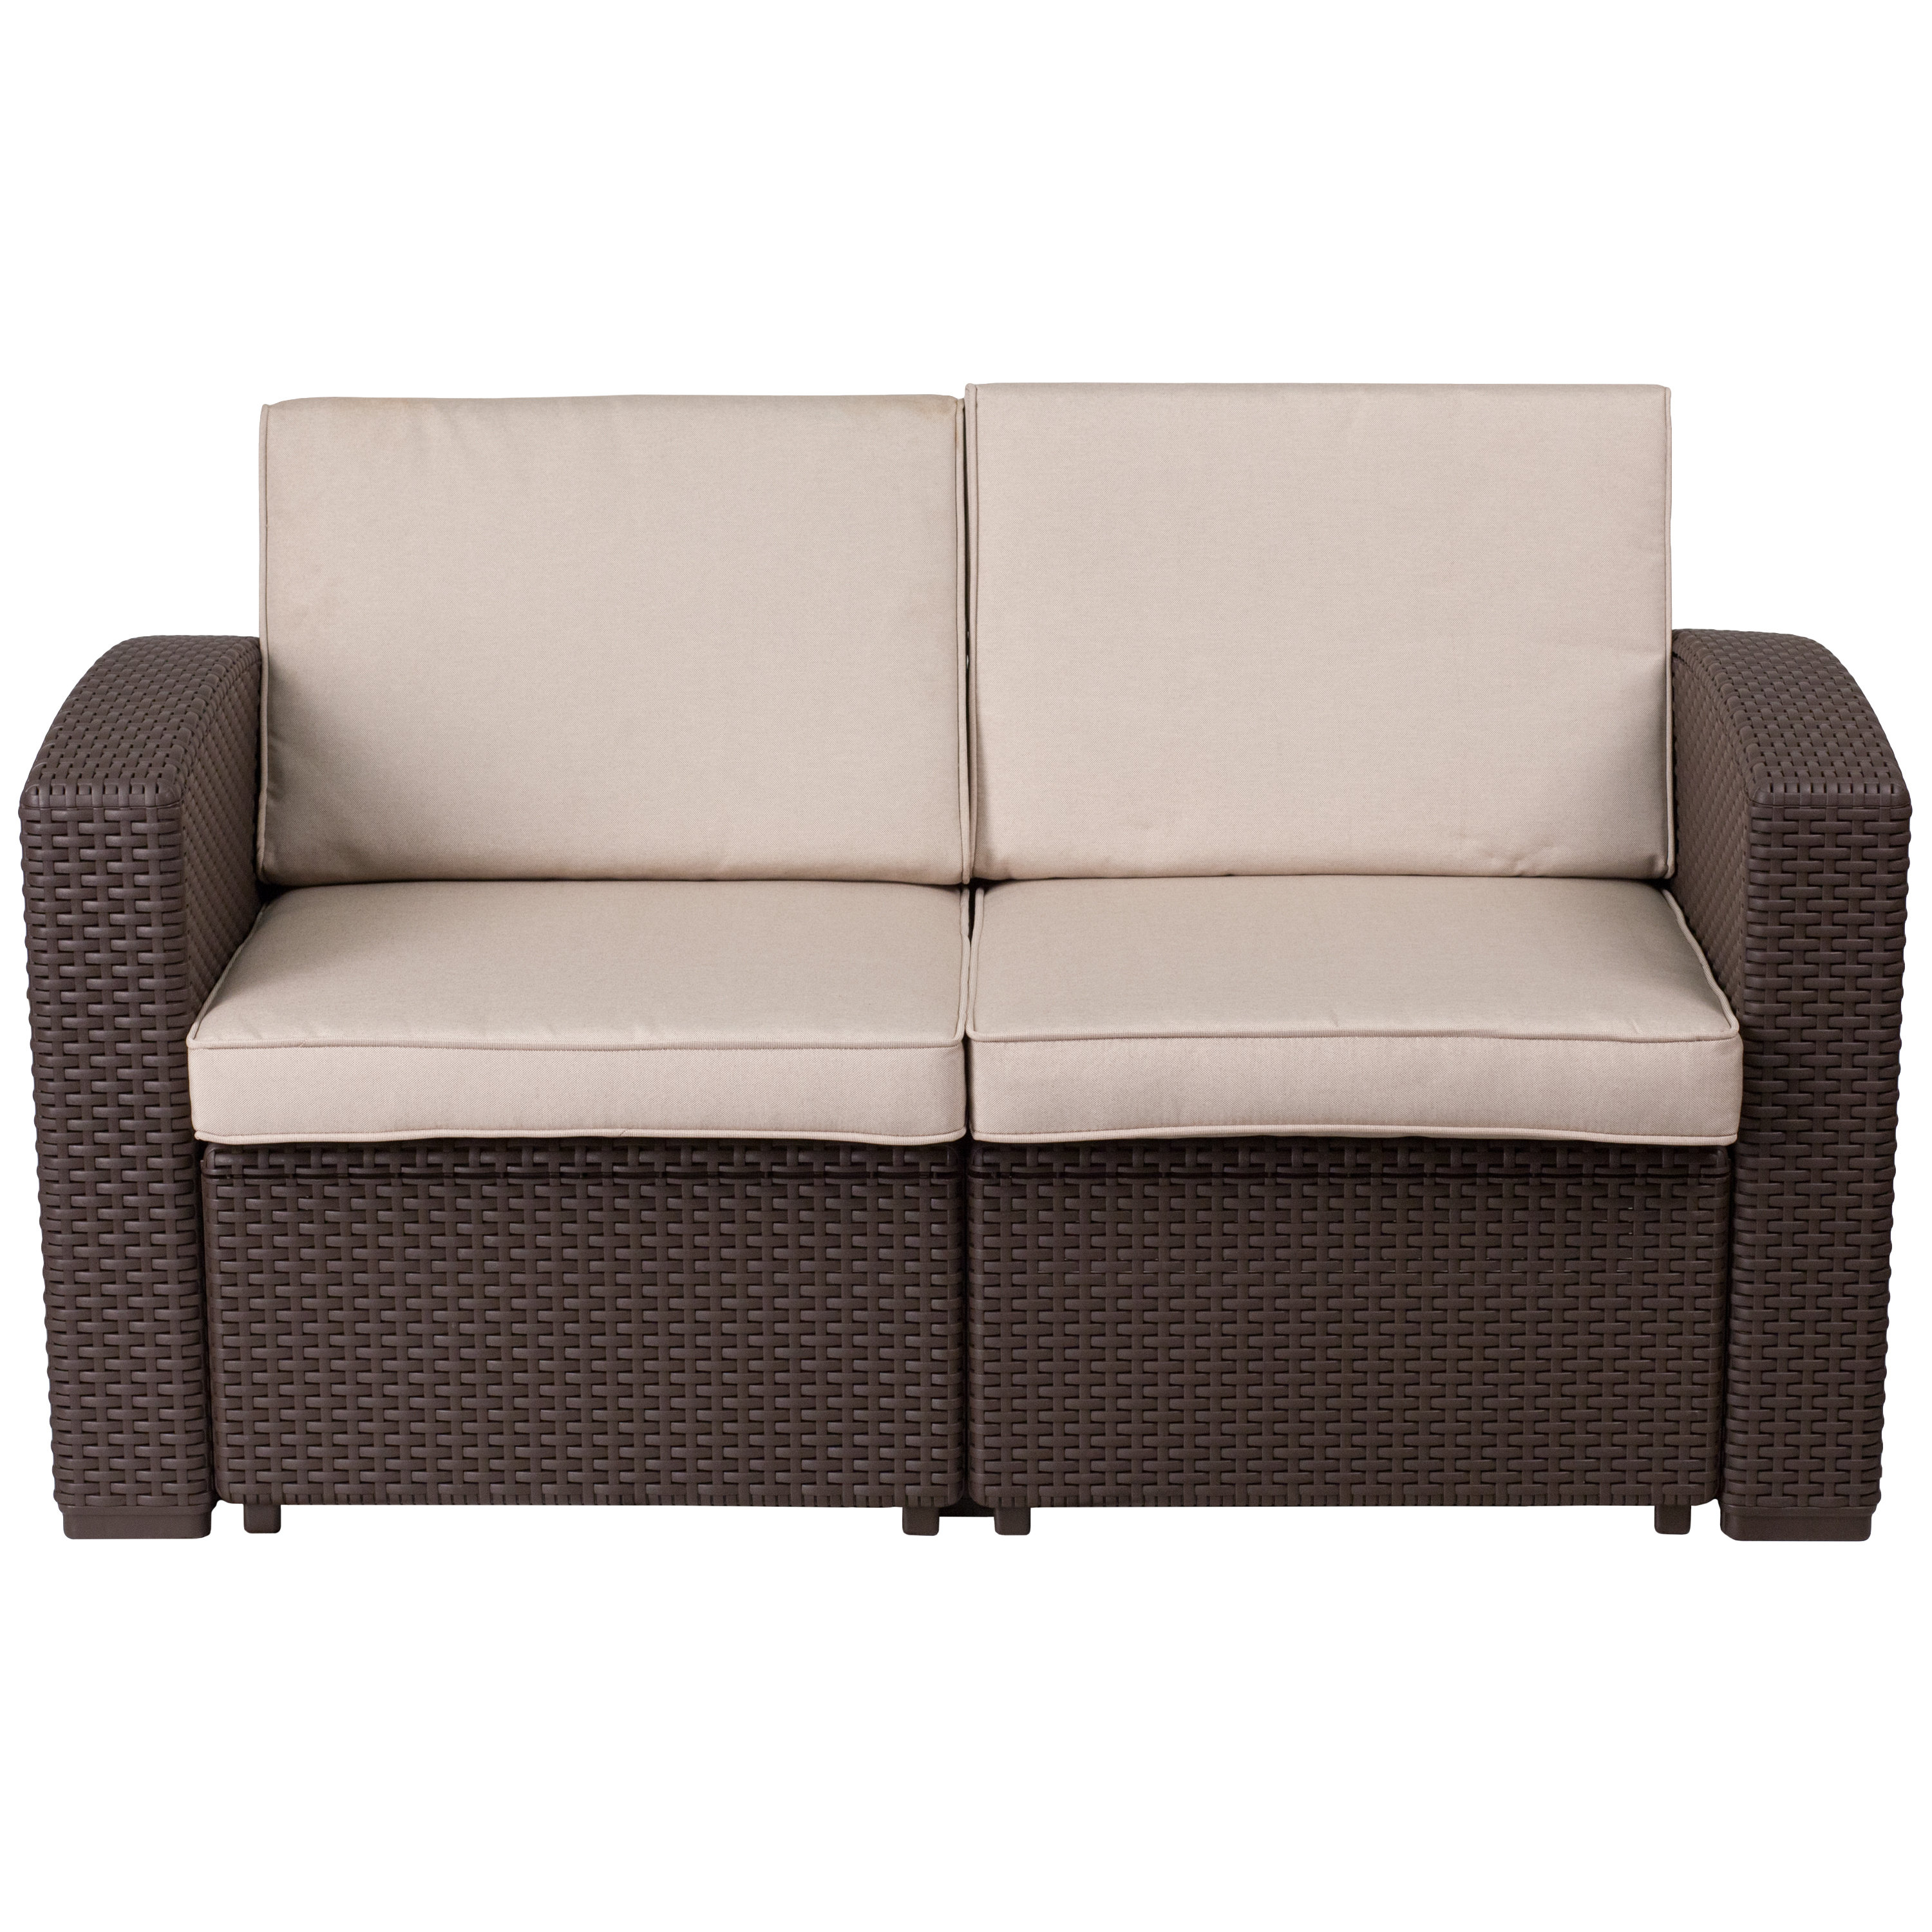 Clifford Loveseat With Cushion With Regard To 2019 Mendelson Loveseats With Cushion (View 6 of 20)